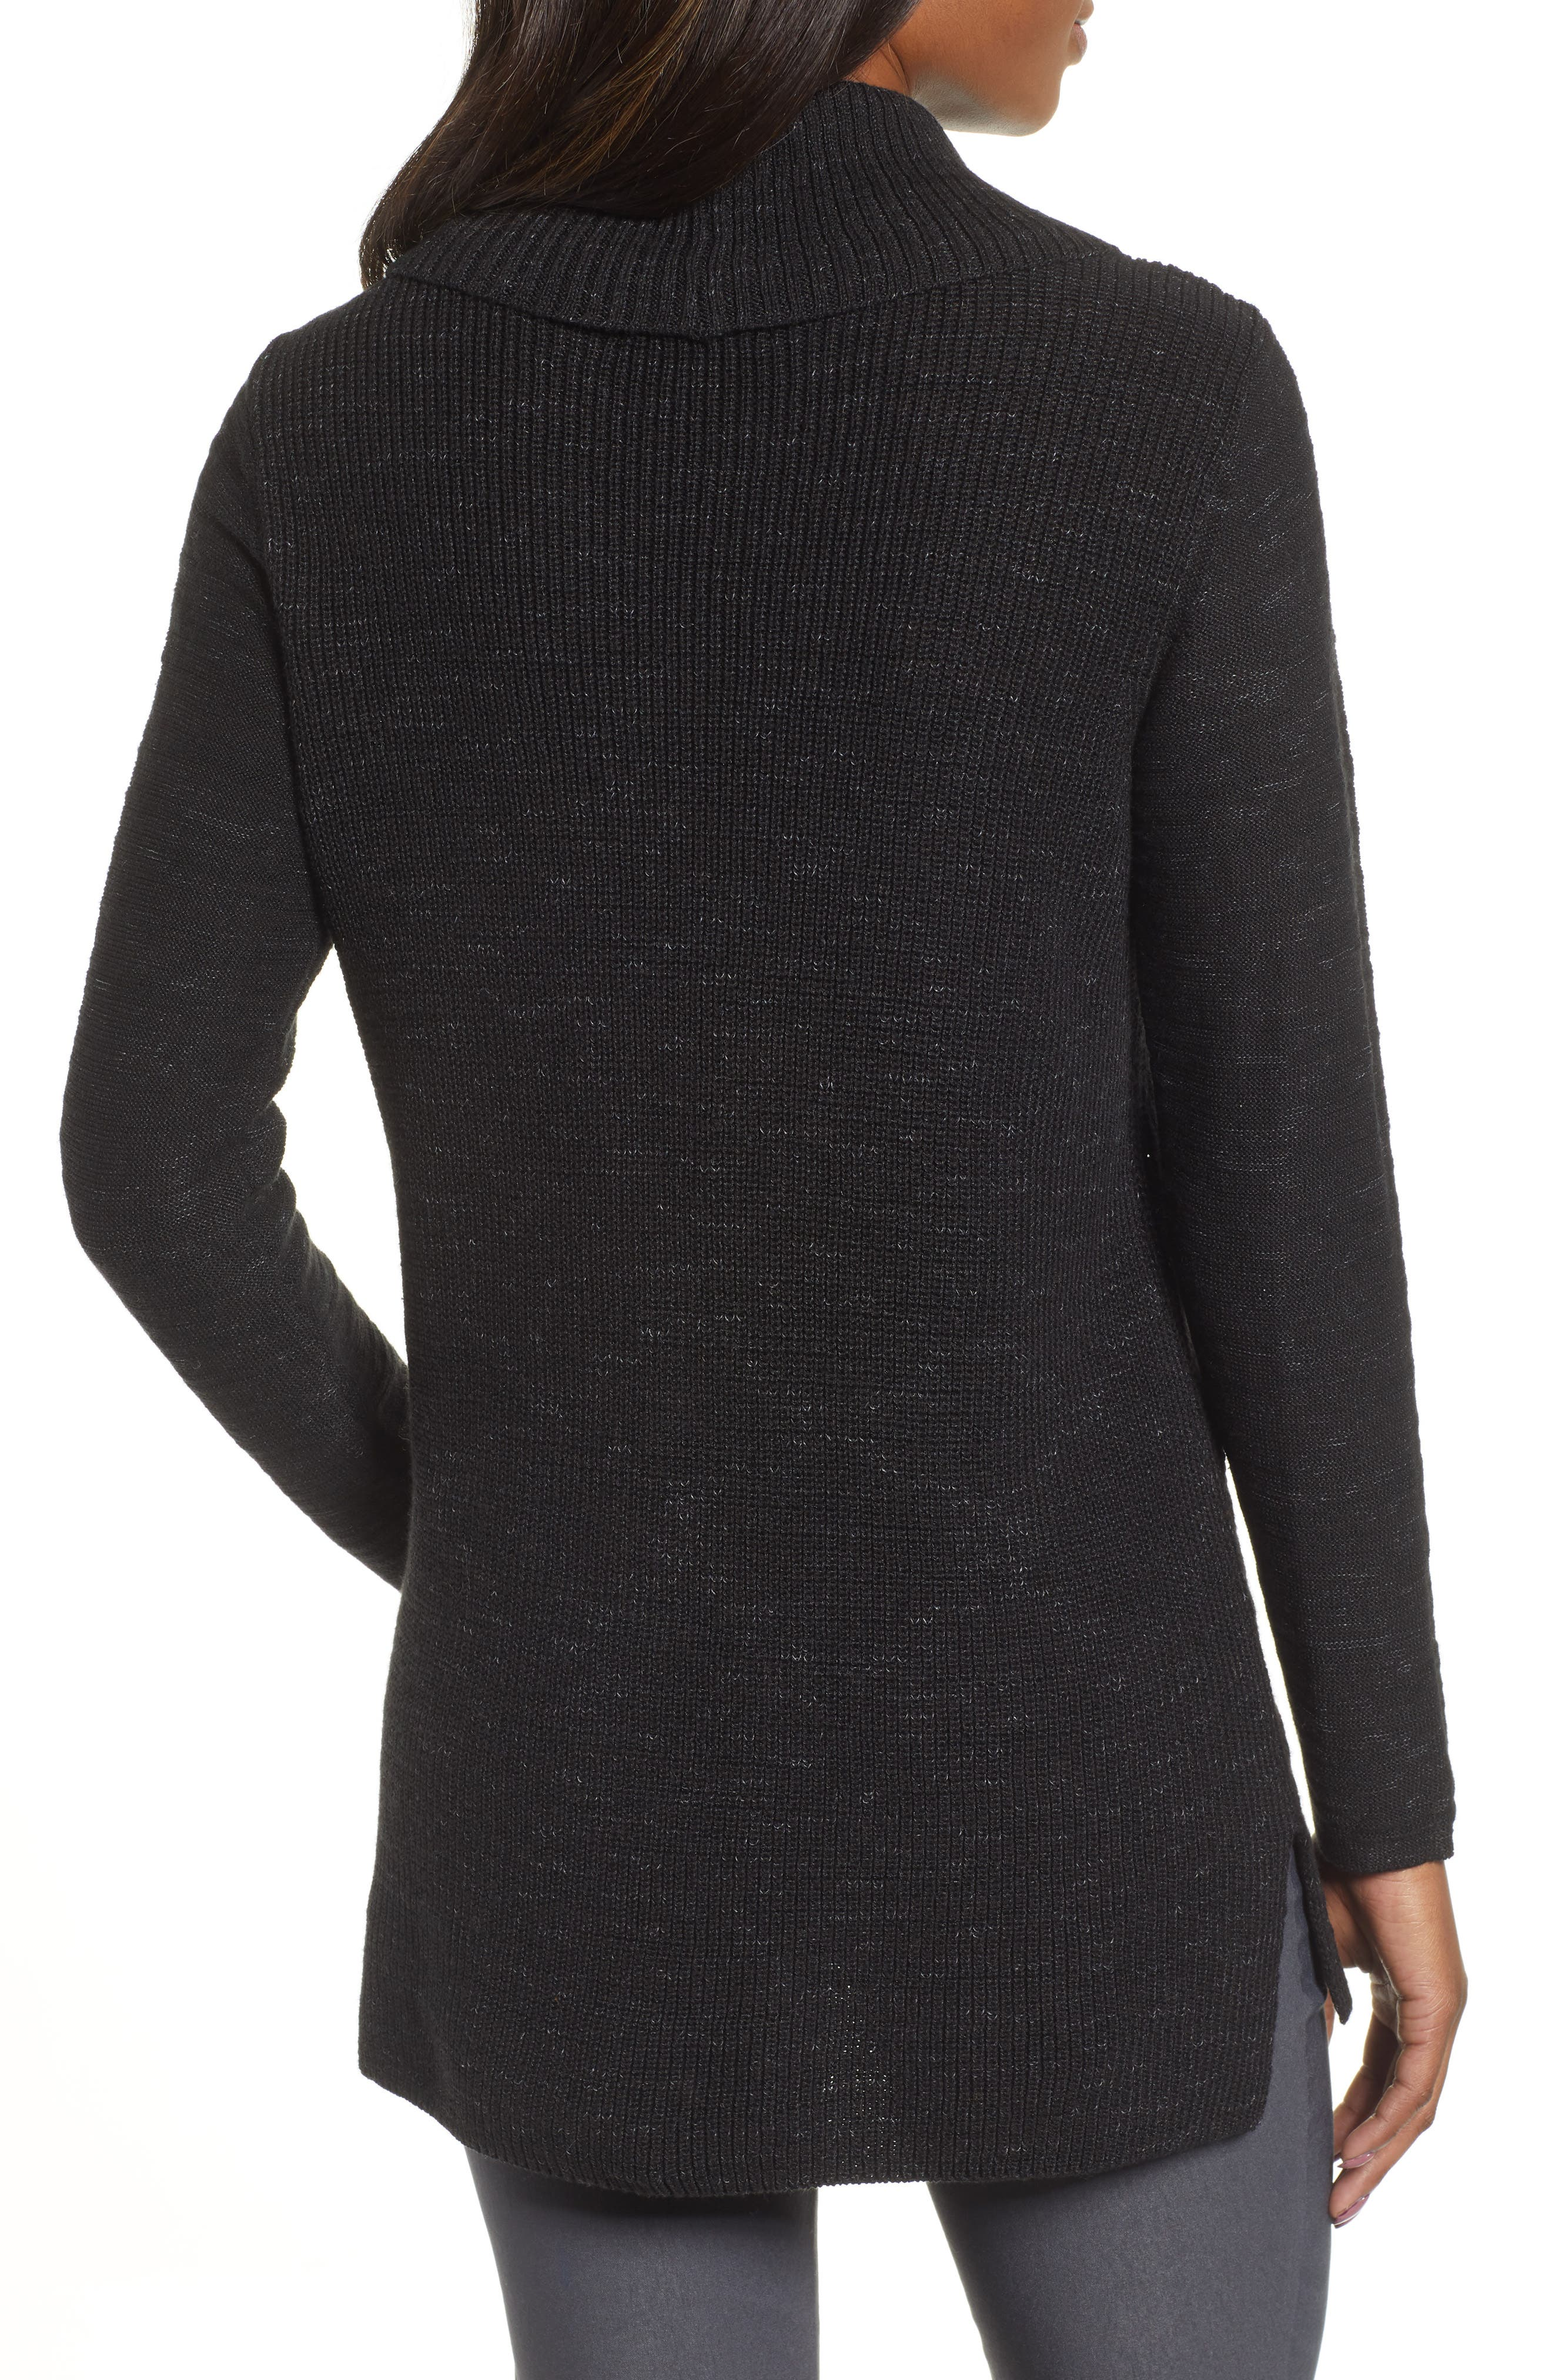 North Star Sweater,                             Alternate thumbnail 2, color,                             004